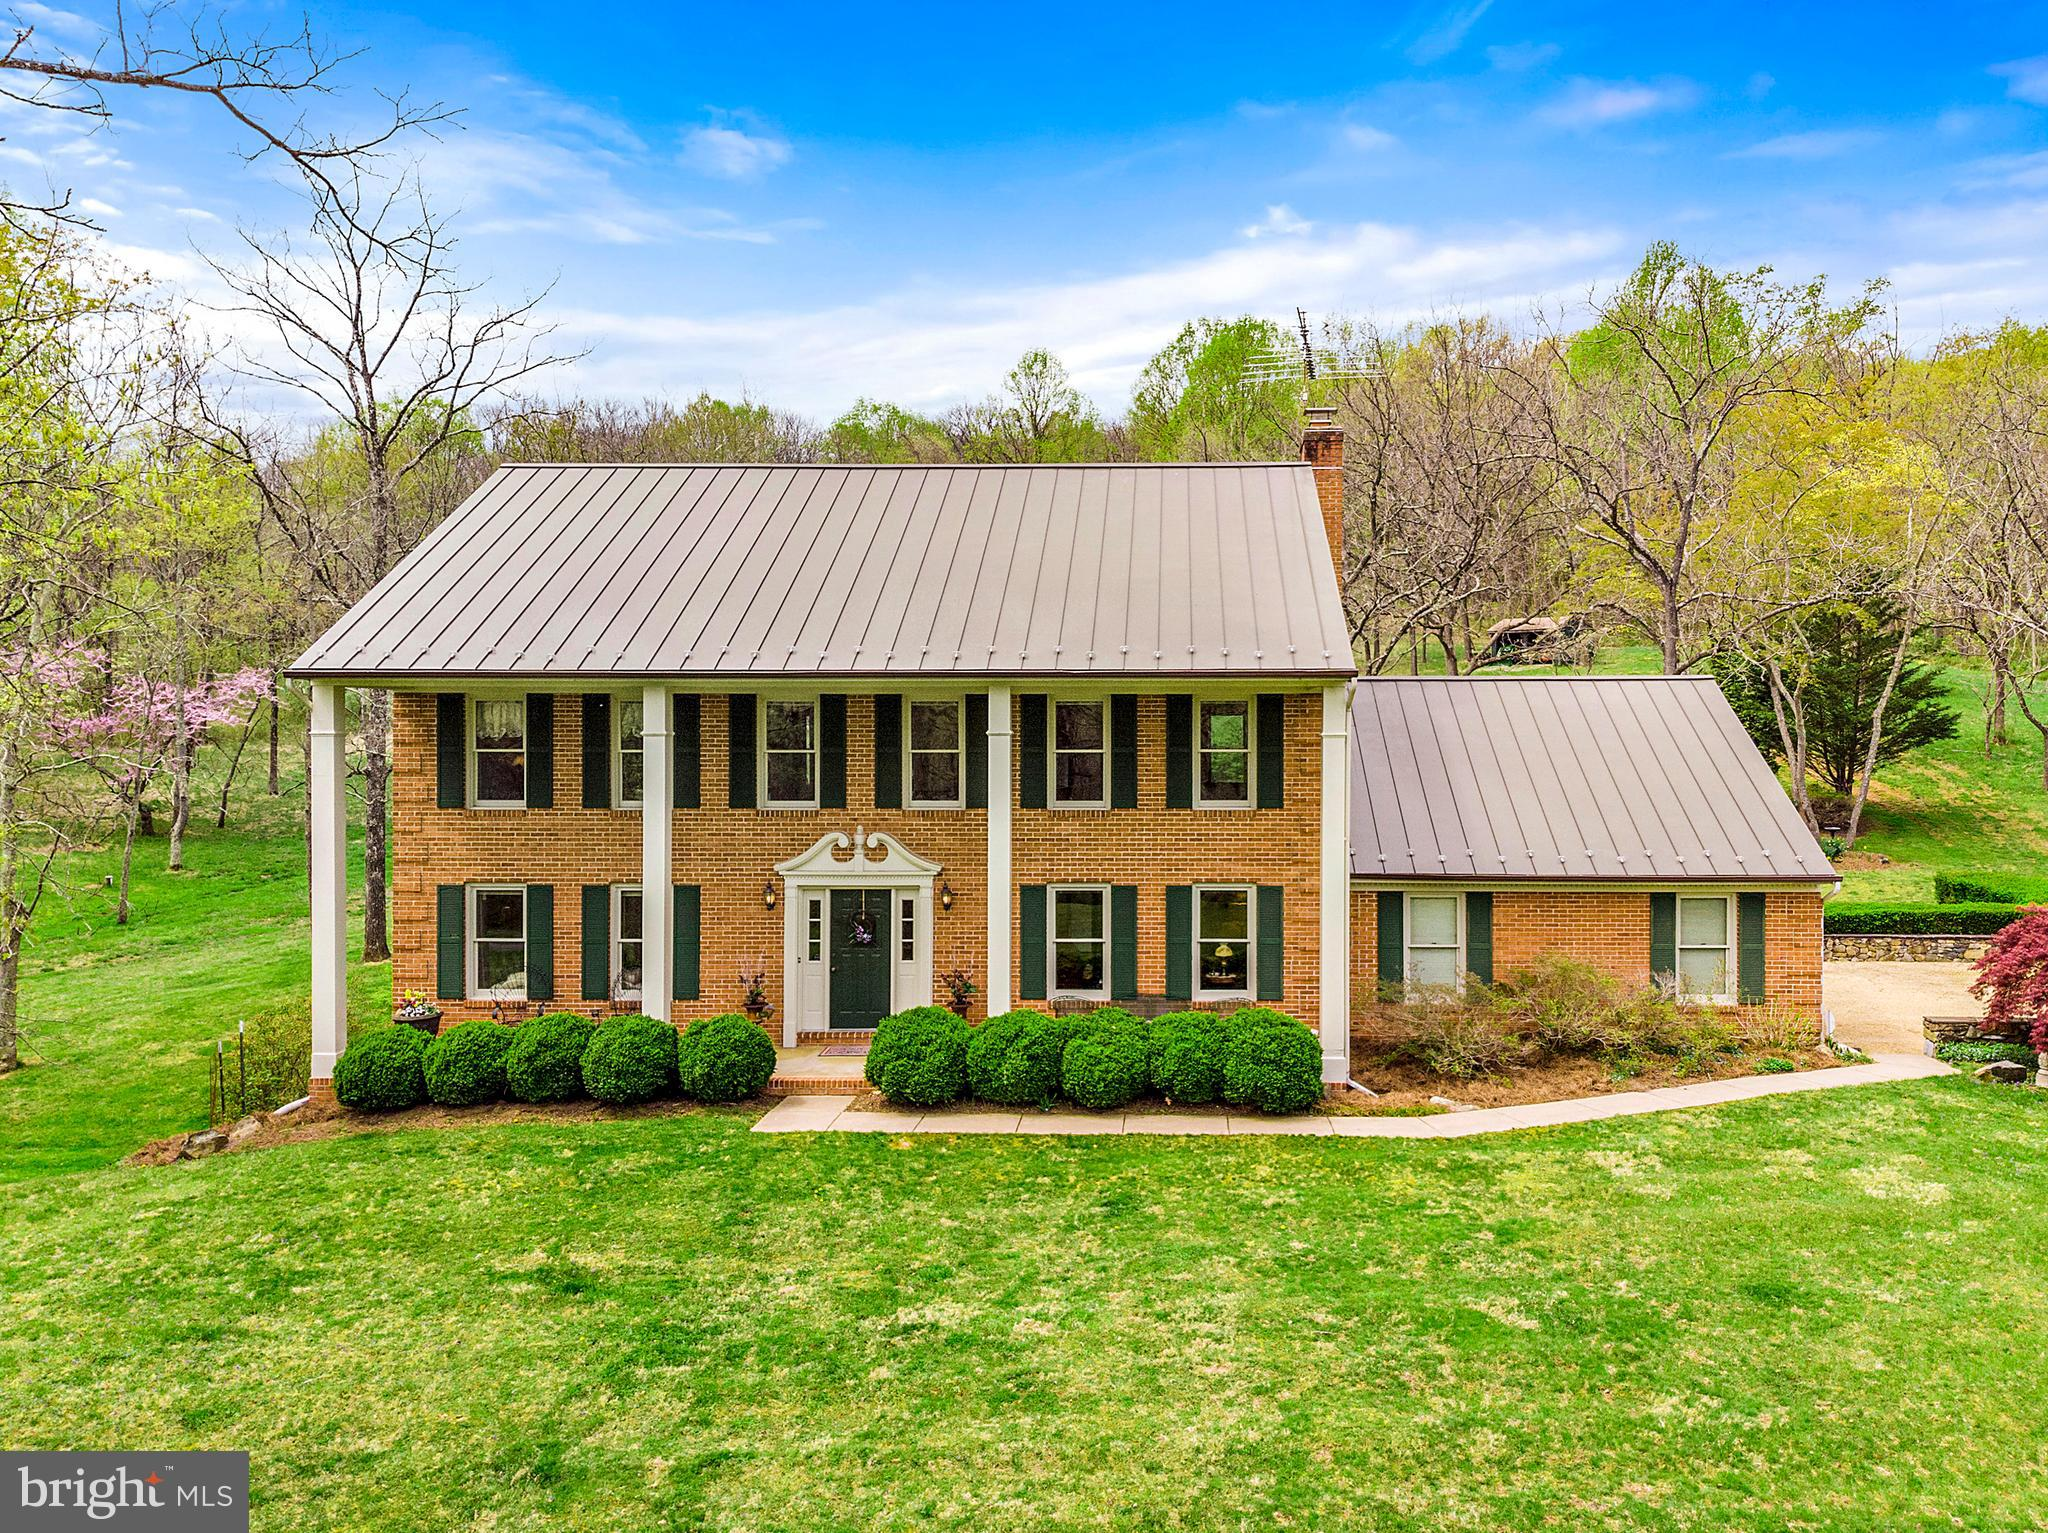 10214 POSSUM HOLLOW DRIVE, DELAPLANE, VA 20144